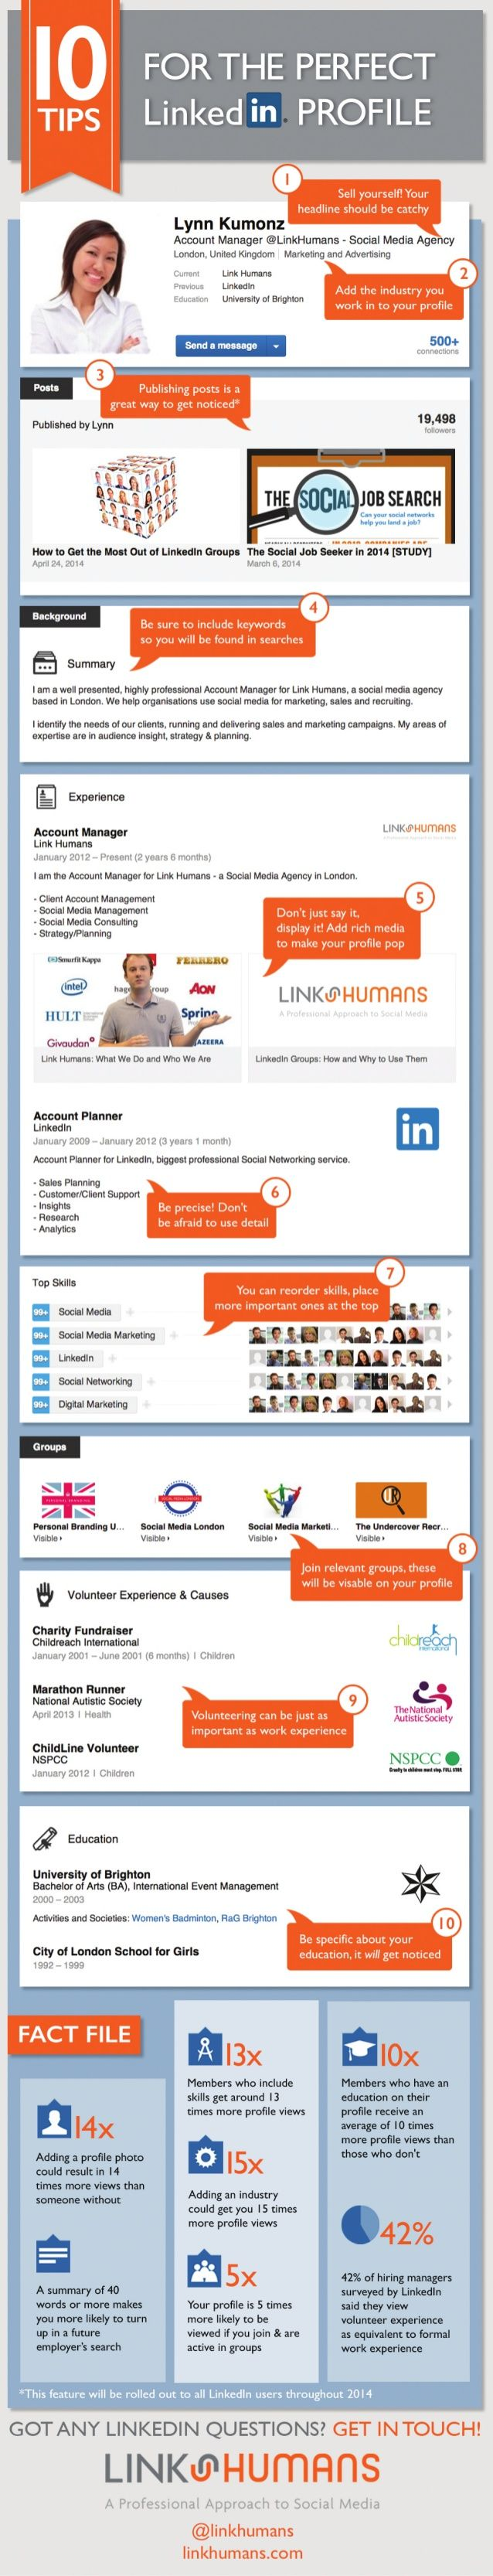 LinkedIn.com: 10 Tips for the Perfect LinkedIn Profile [Infographic] - Create a killer LinkedIn Profile with these 10 simple, personal and creative tips.